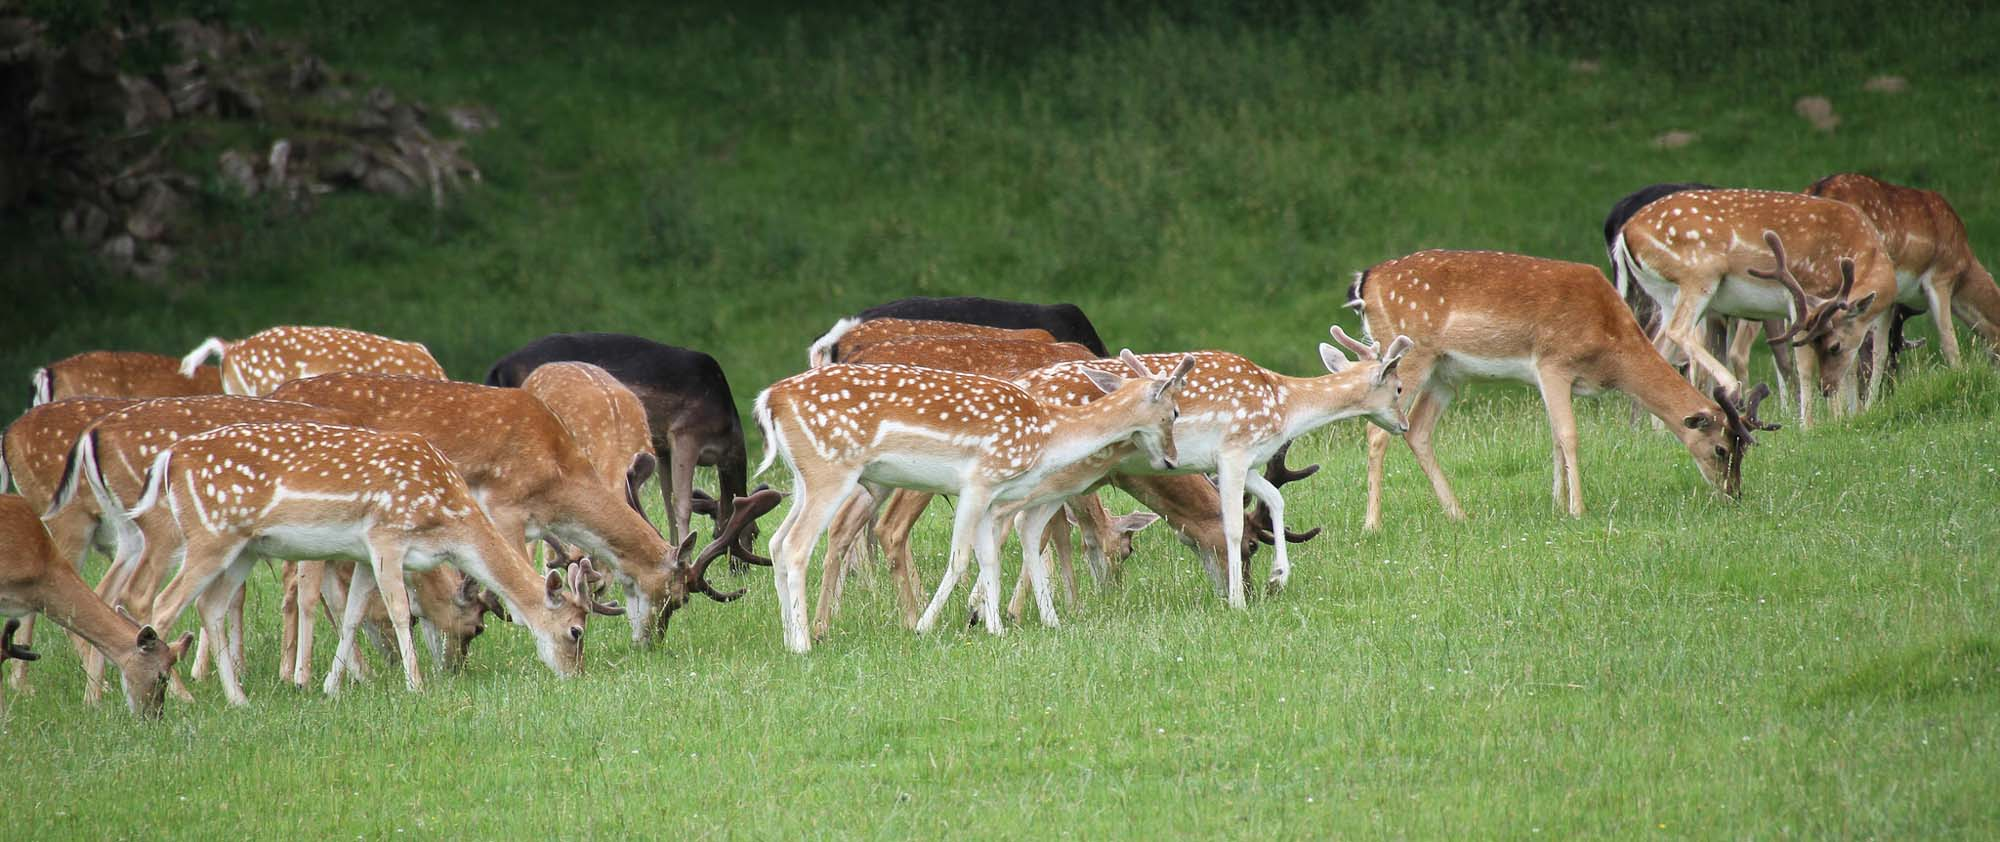 Fallow deer. Photo Tony Hisgett